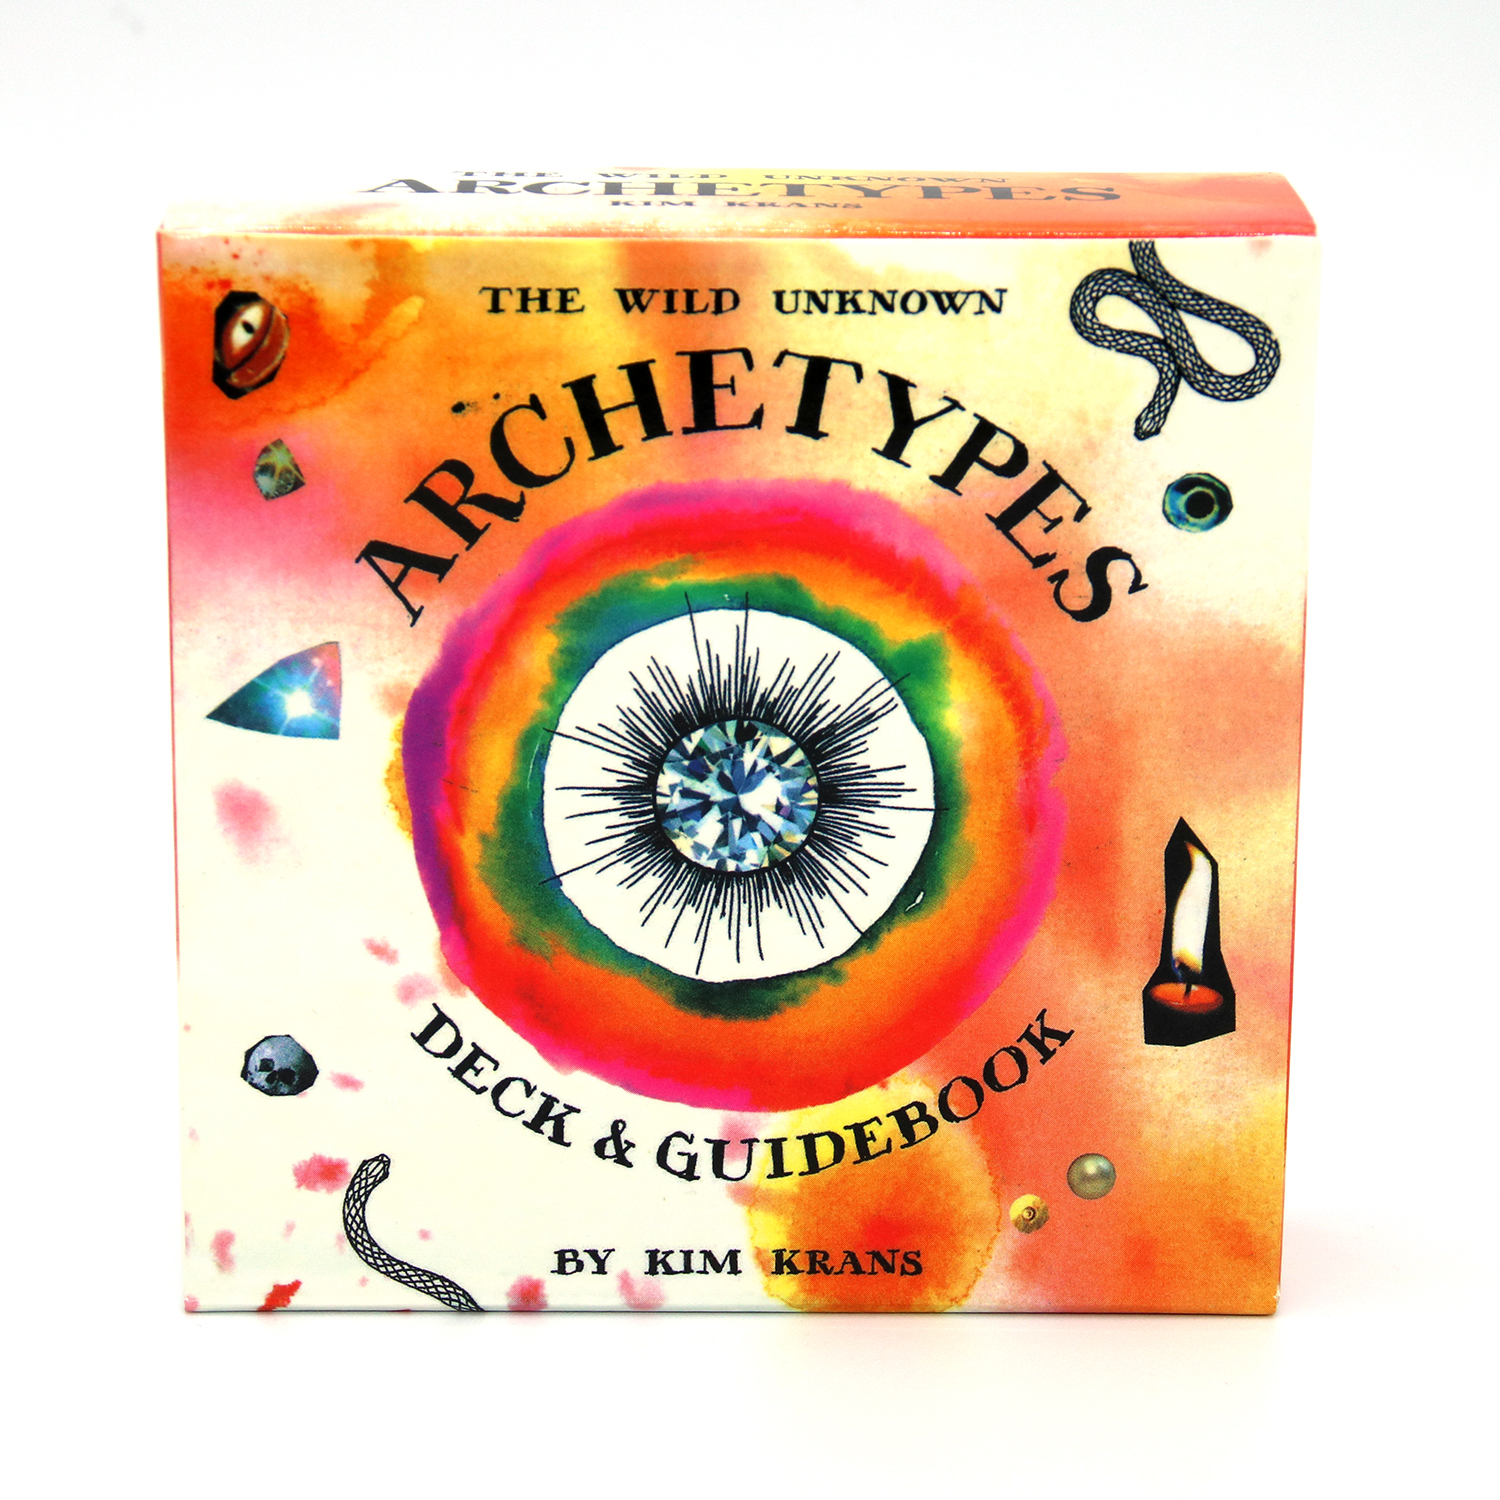 78pcs The Wild Unknown Archetypes Deck Guidebook By Kim Krans Circular Oracle Tarot Deck Card Game Guidance Fate Divination Card